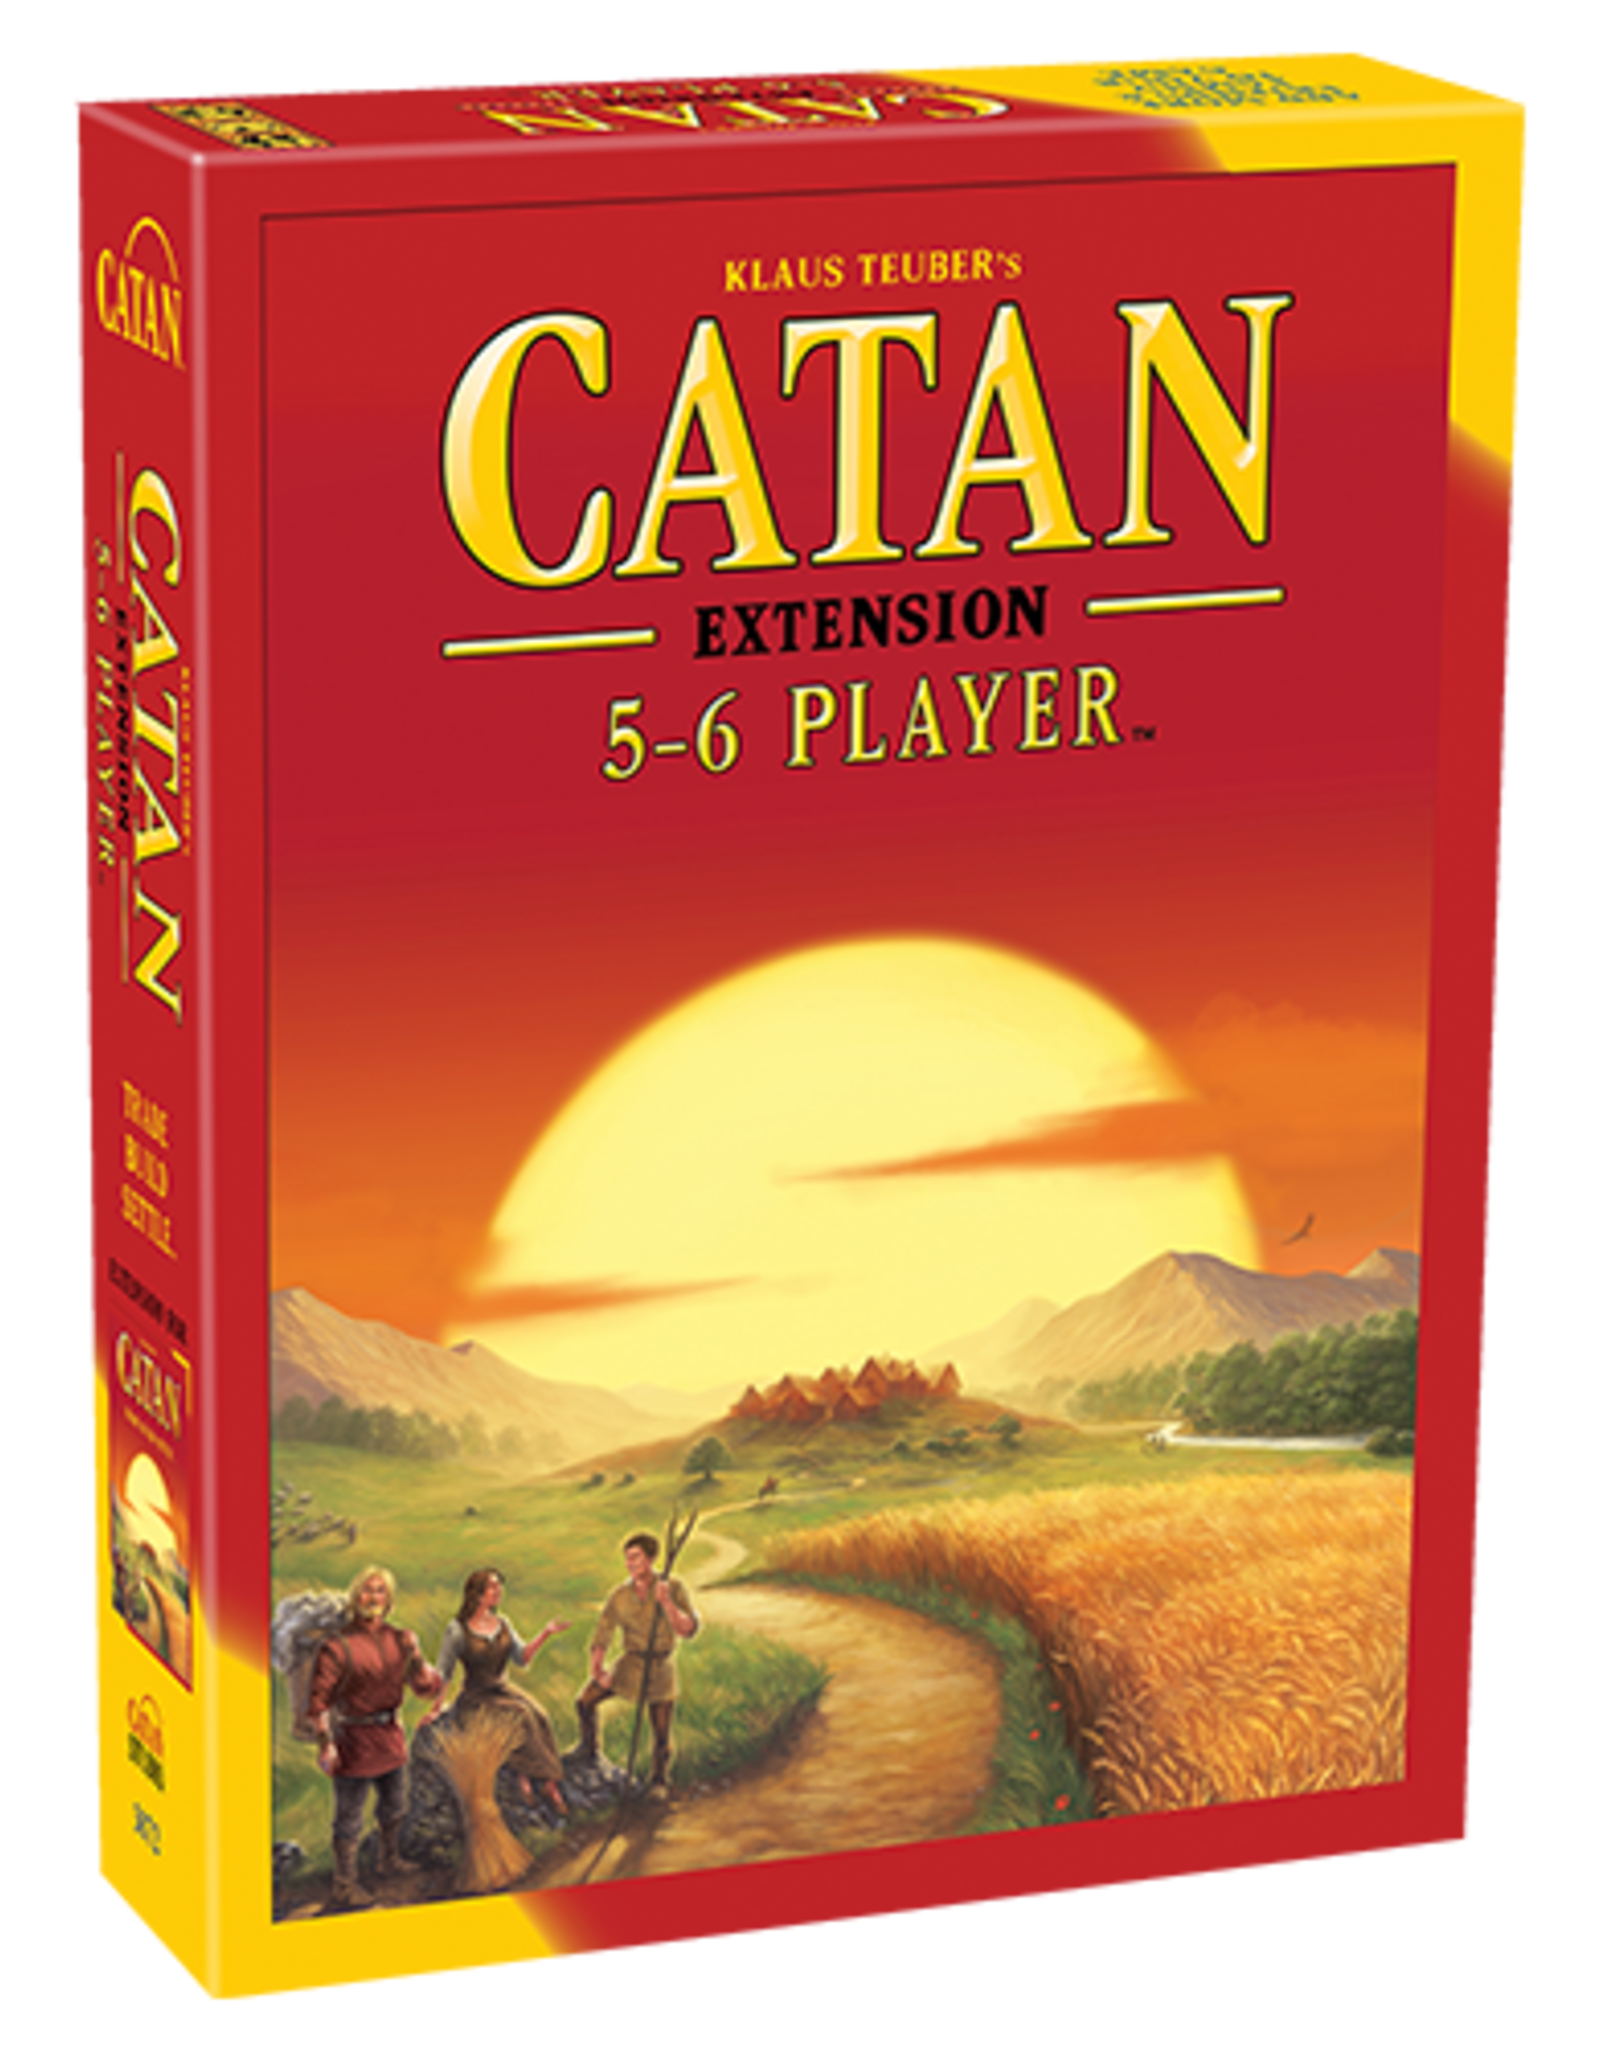 Catan Studios Catan: 5-6 Player Extension